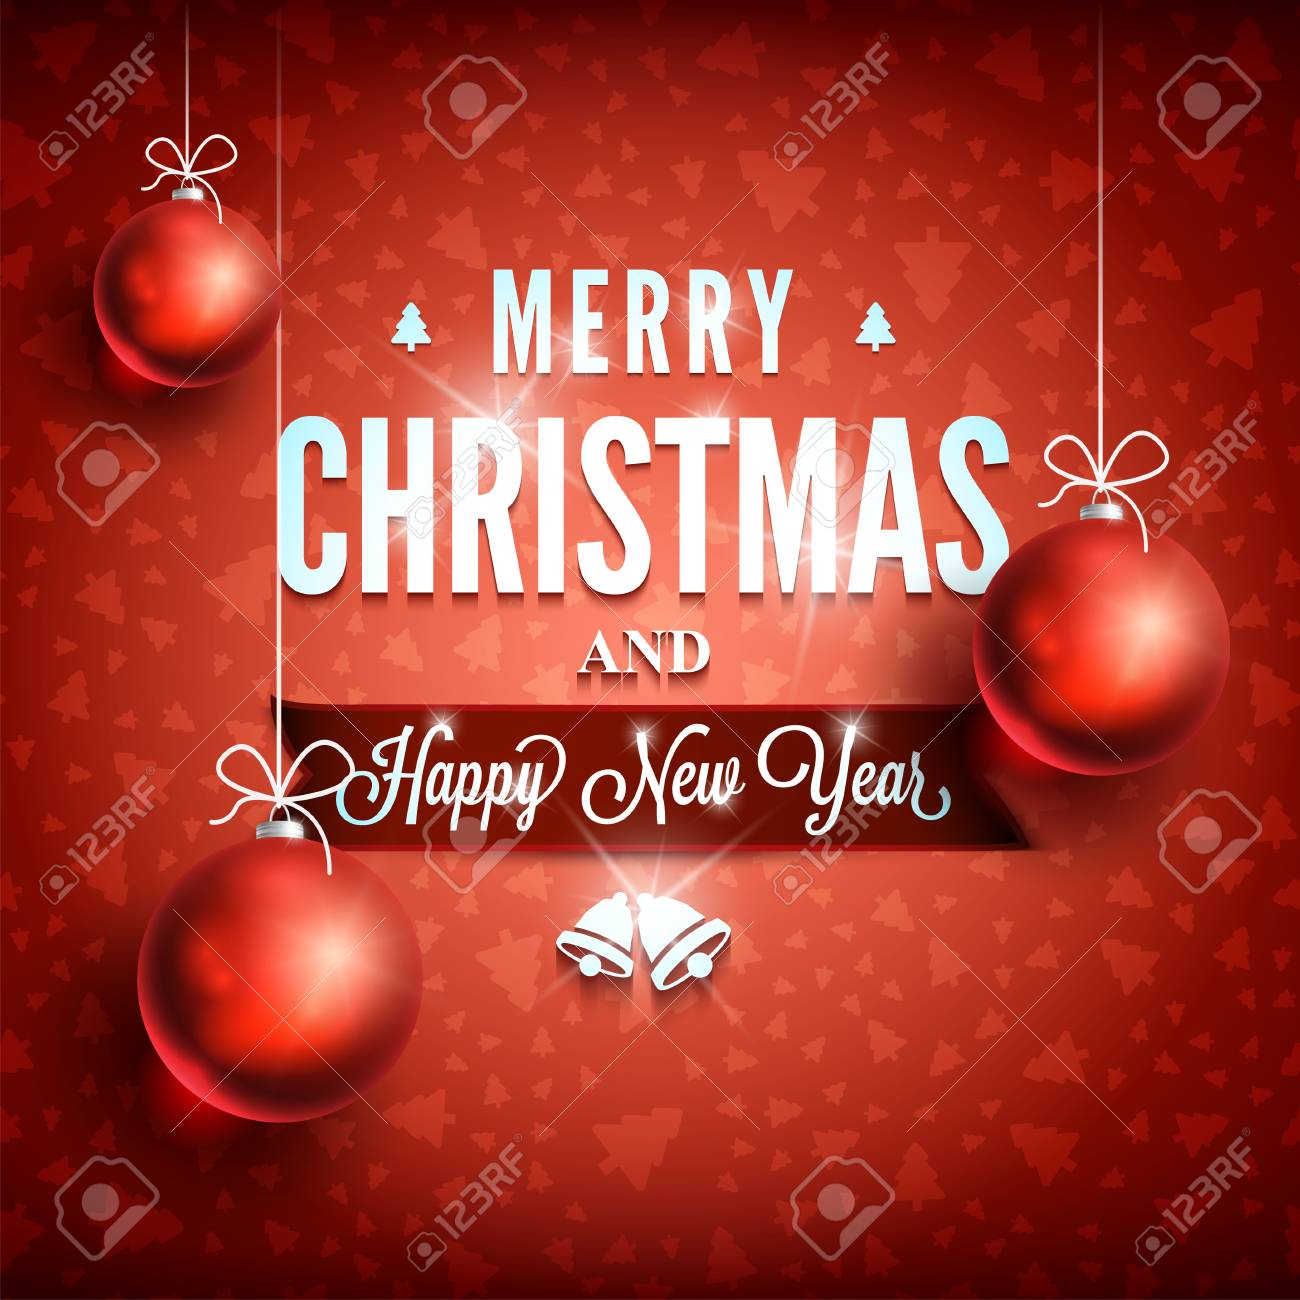 Merry christmas and happy new year message on red background merry christmas and happy new year message on red background christmas related ornaments objects on m4hsunfo